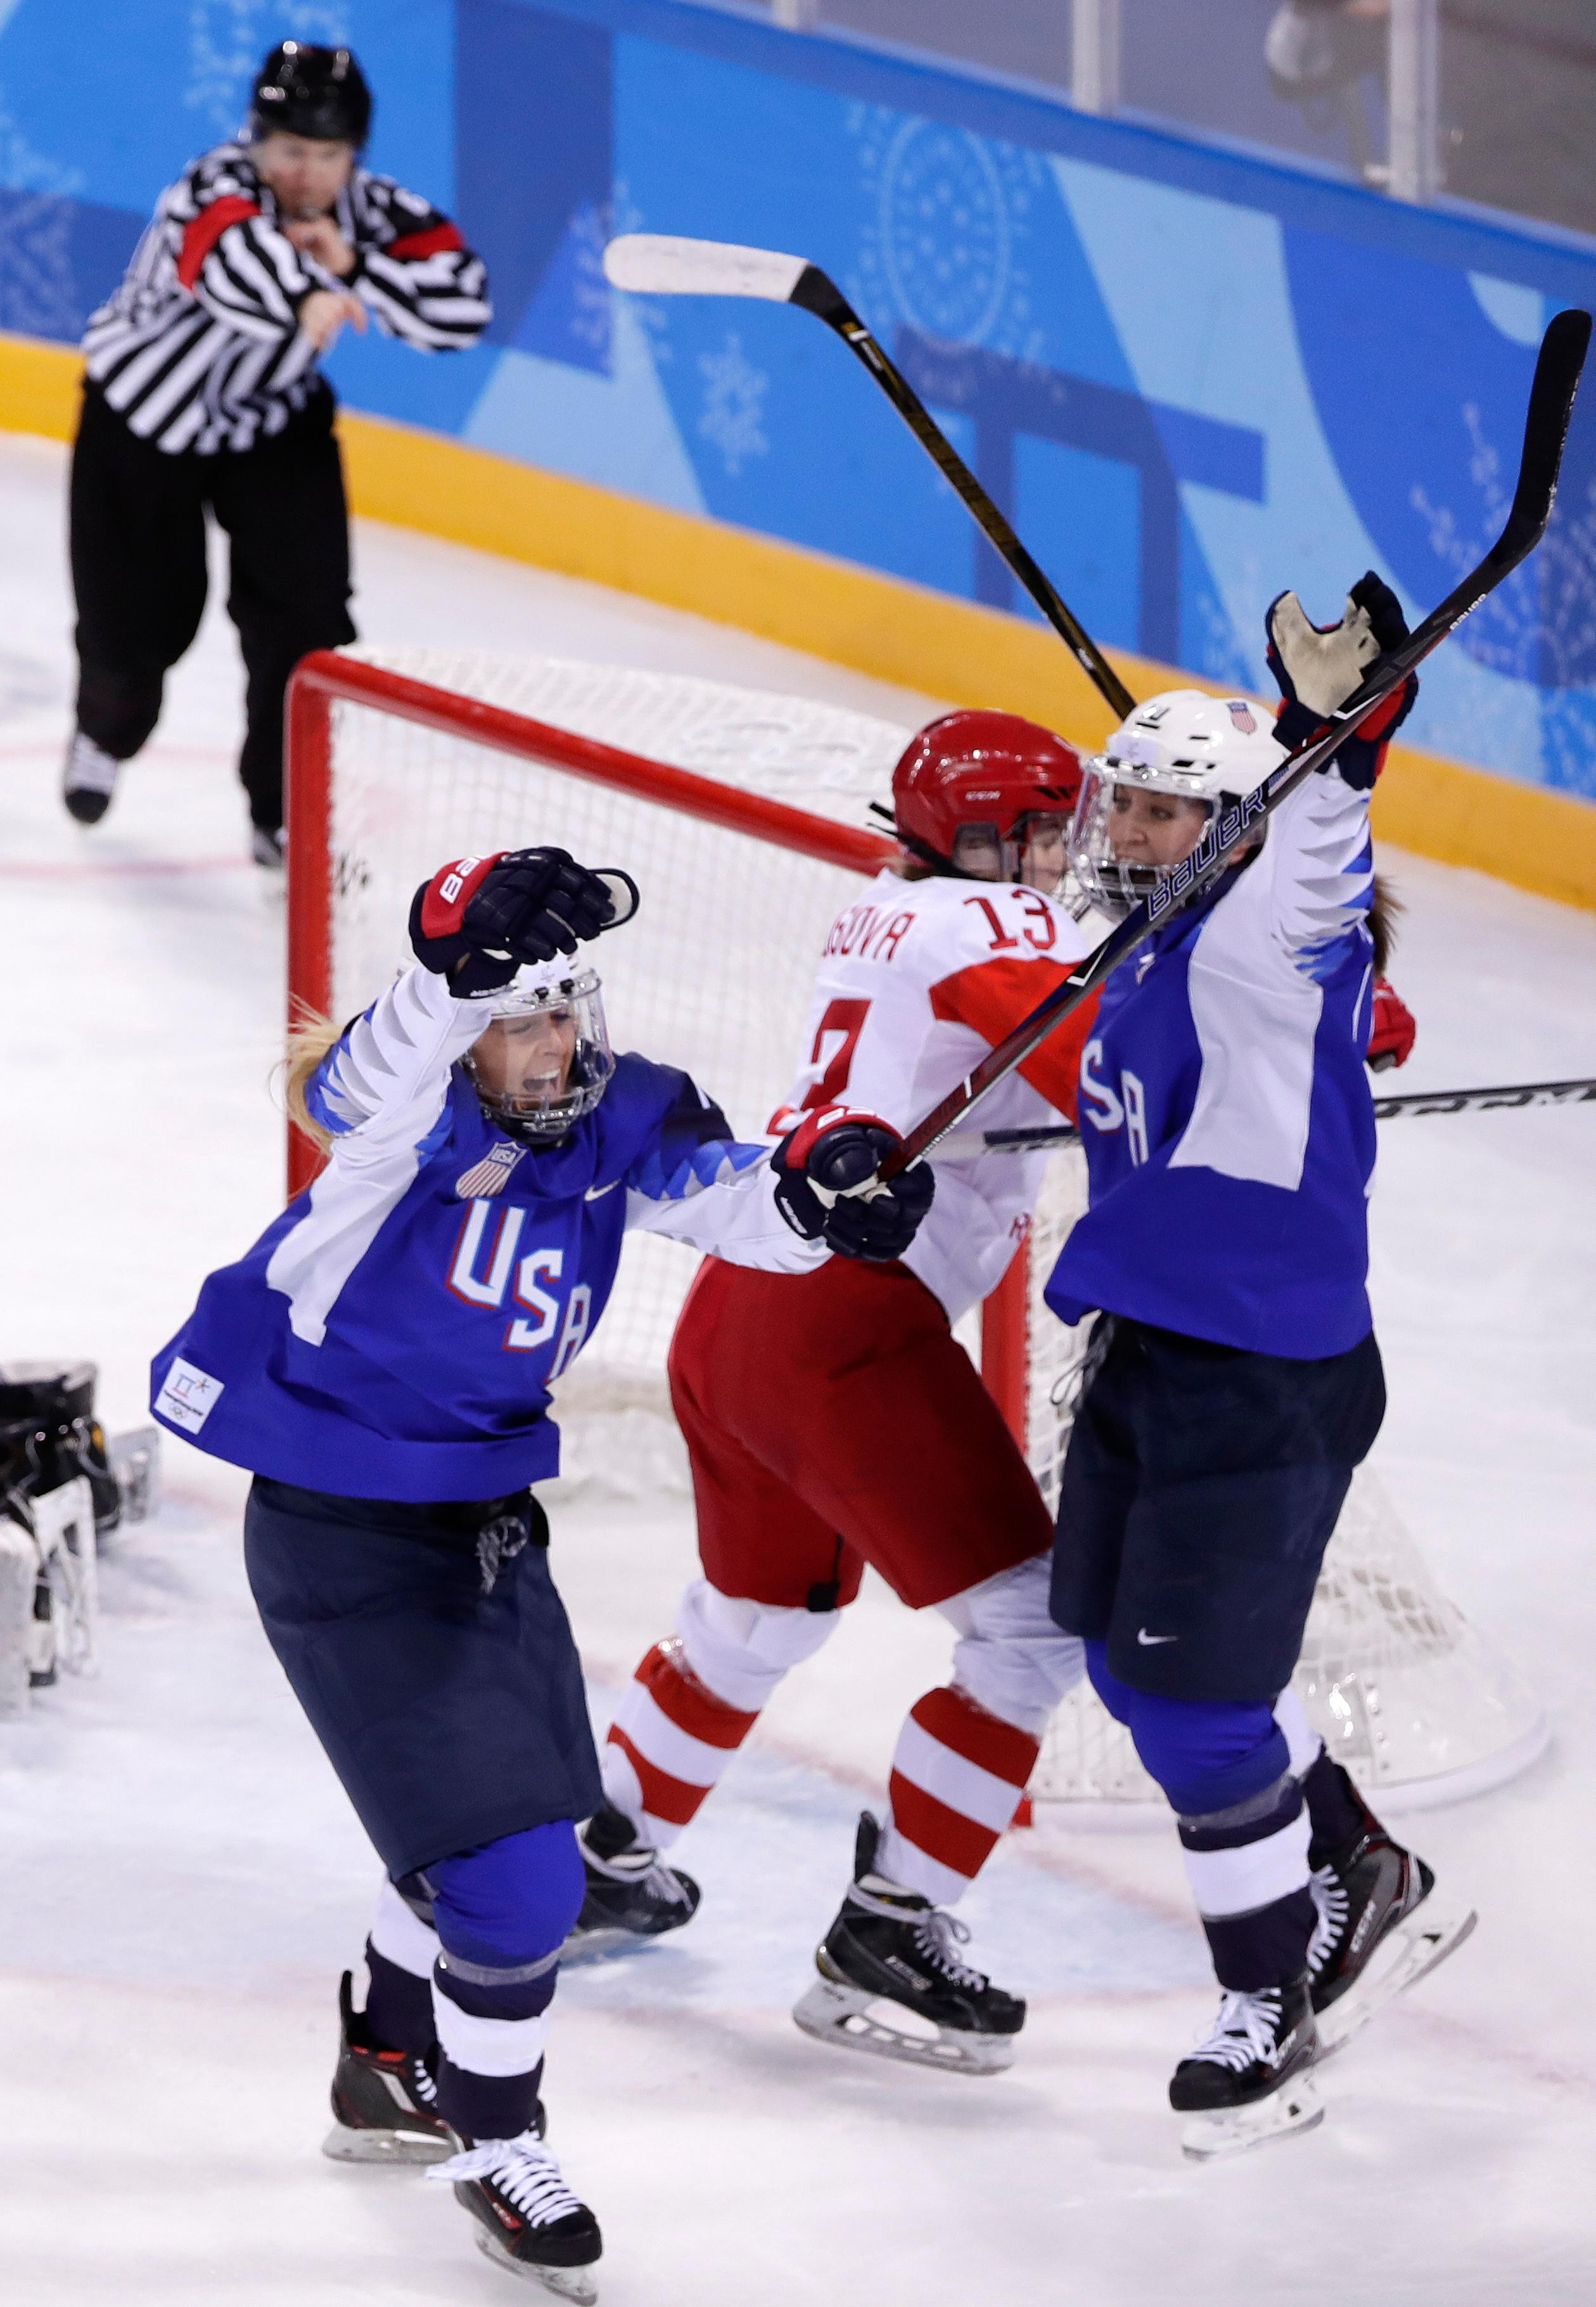 Gigi Marvin, left, of the United States, reacts after scoring a goal during the second period of the preliminary round of the women's hockey game against the team from Russia at the 2018 Winter Olympics in Gangneung, South Korea, Tuesday, Feb. 13, 2018. (AP Photo/Frank Franklin II)